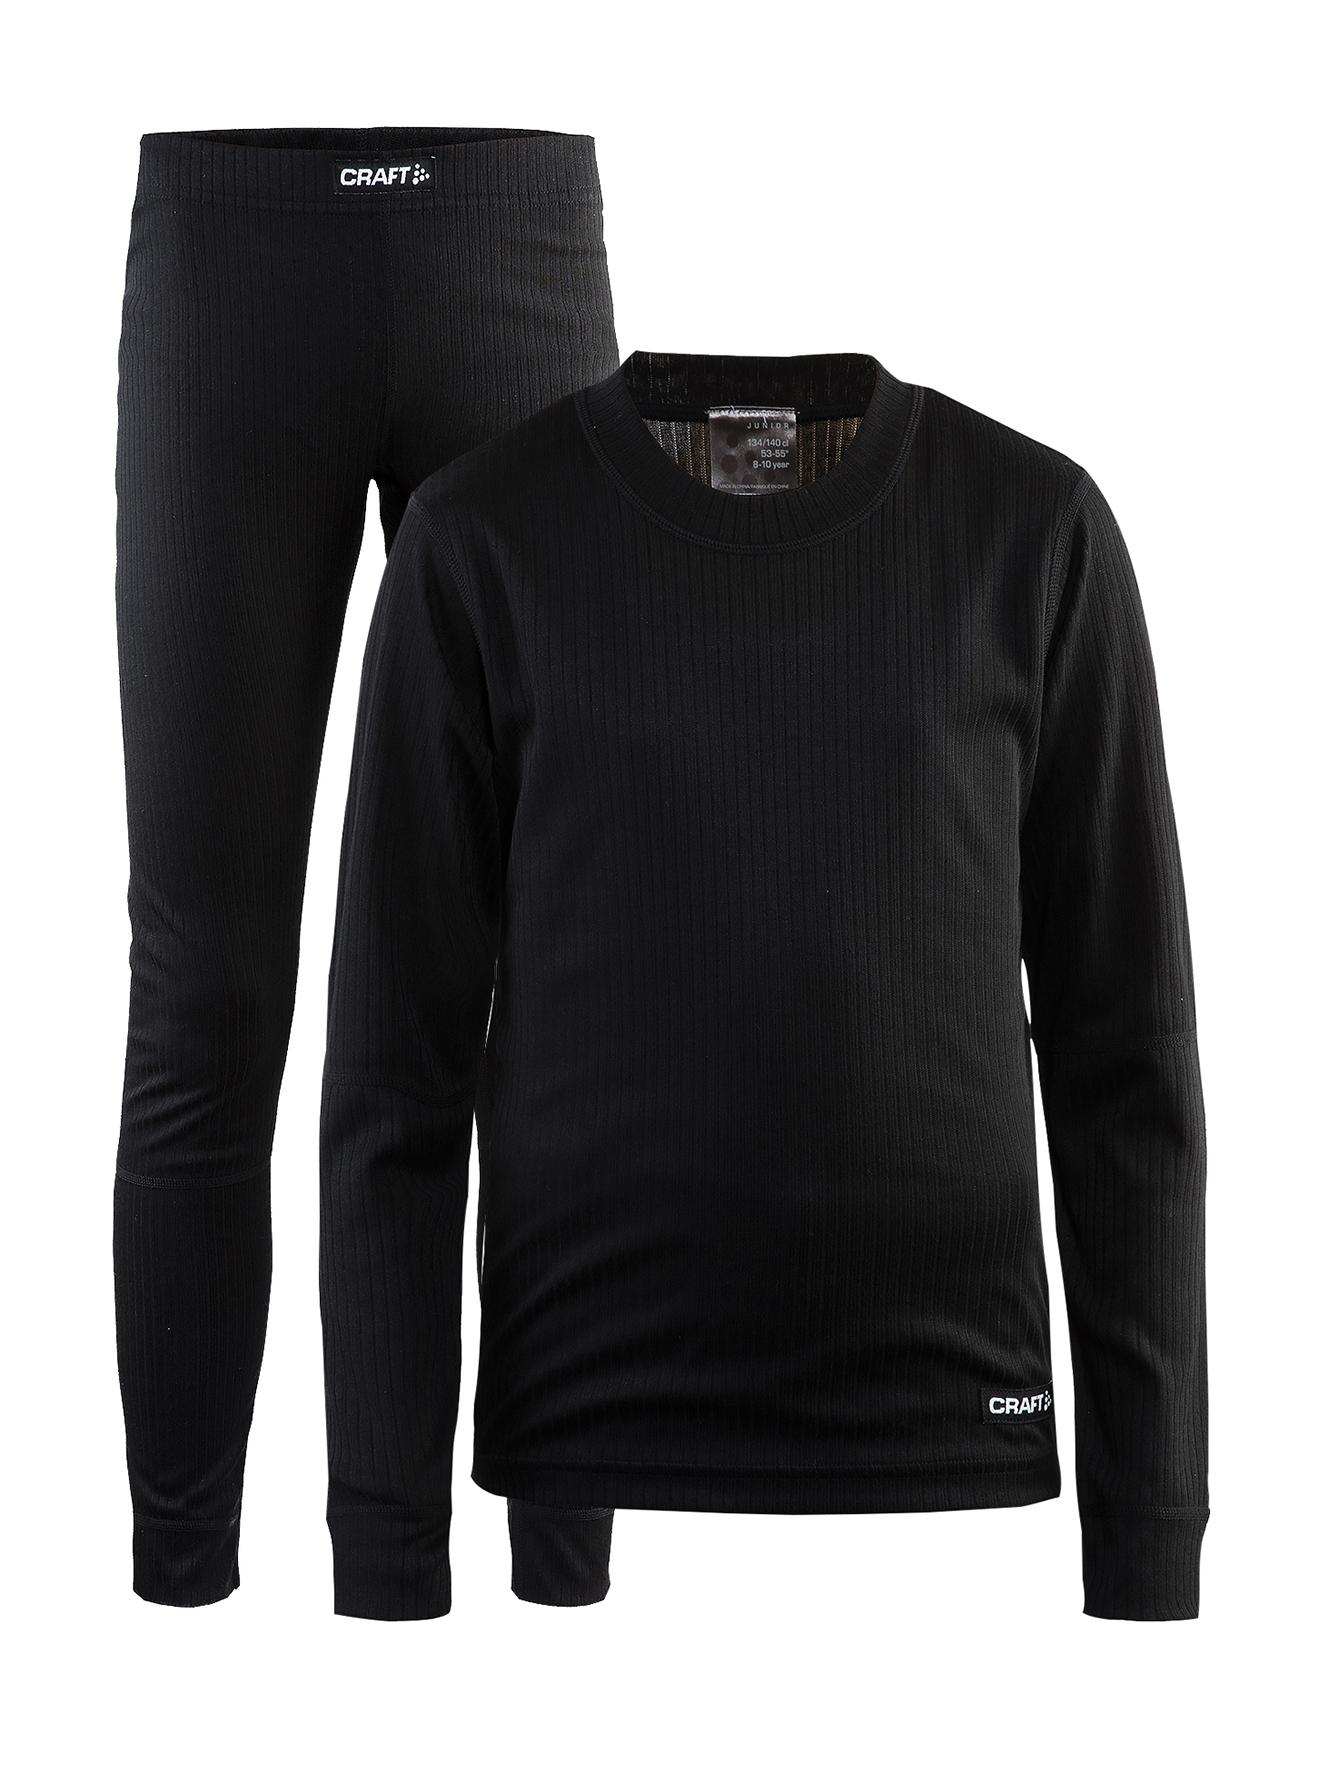 Baselayer Set Junior 110/116 999000 BLACK -> /media/download/1905355_110116_999000-black.jpg